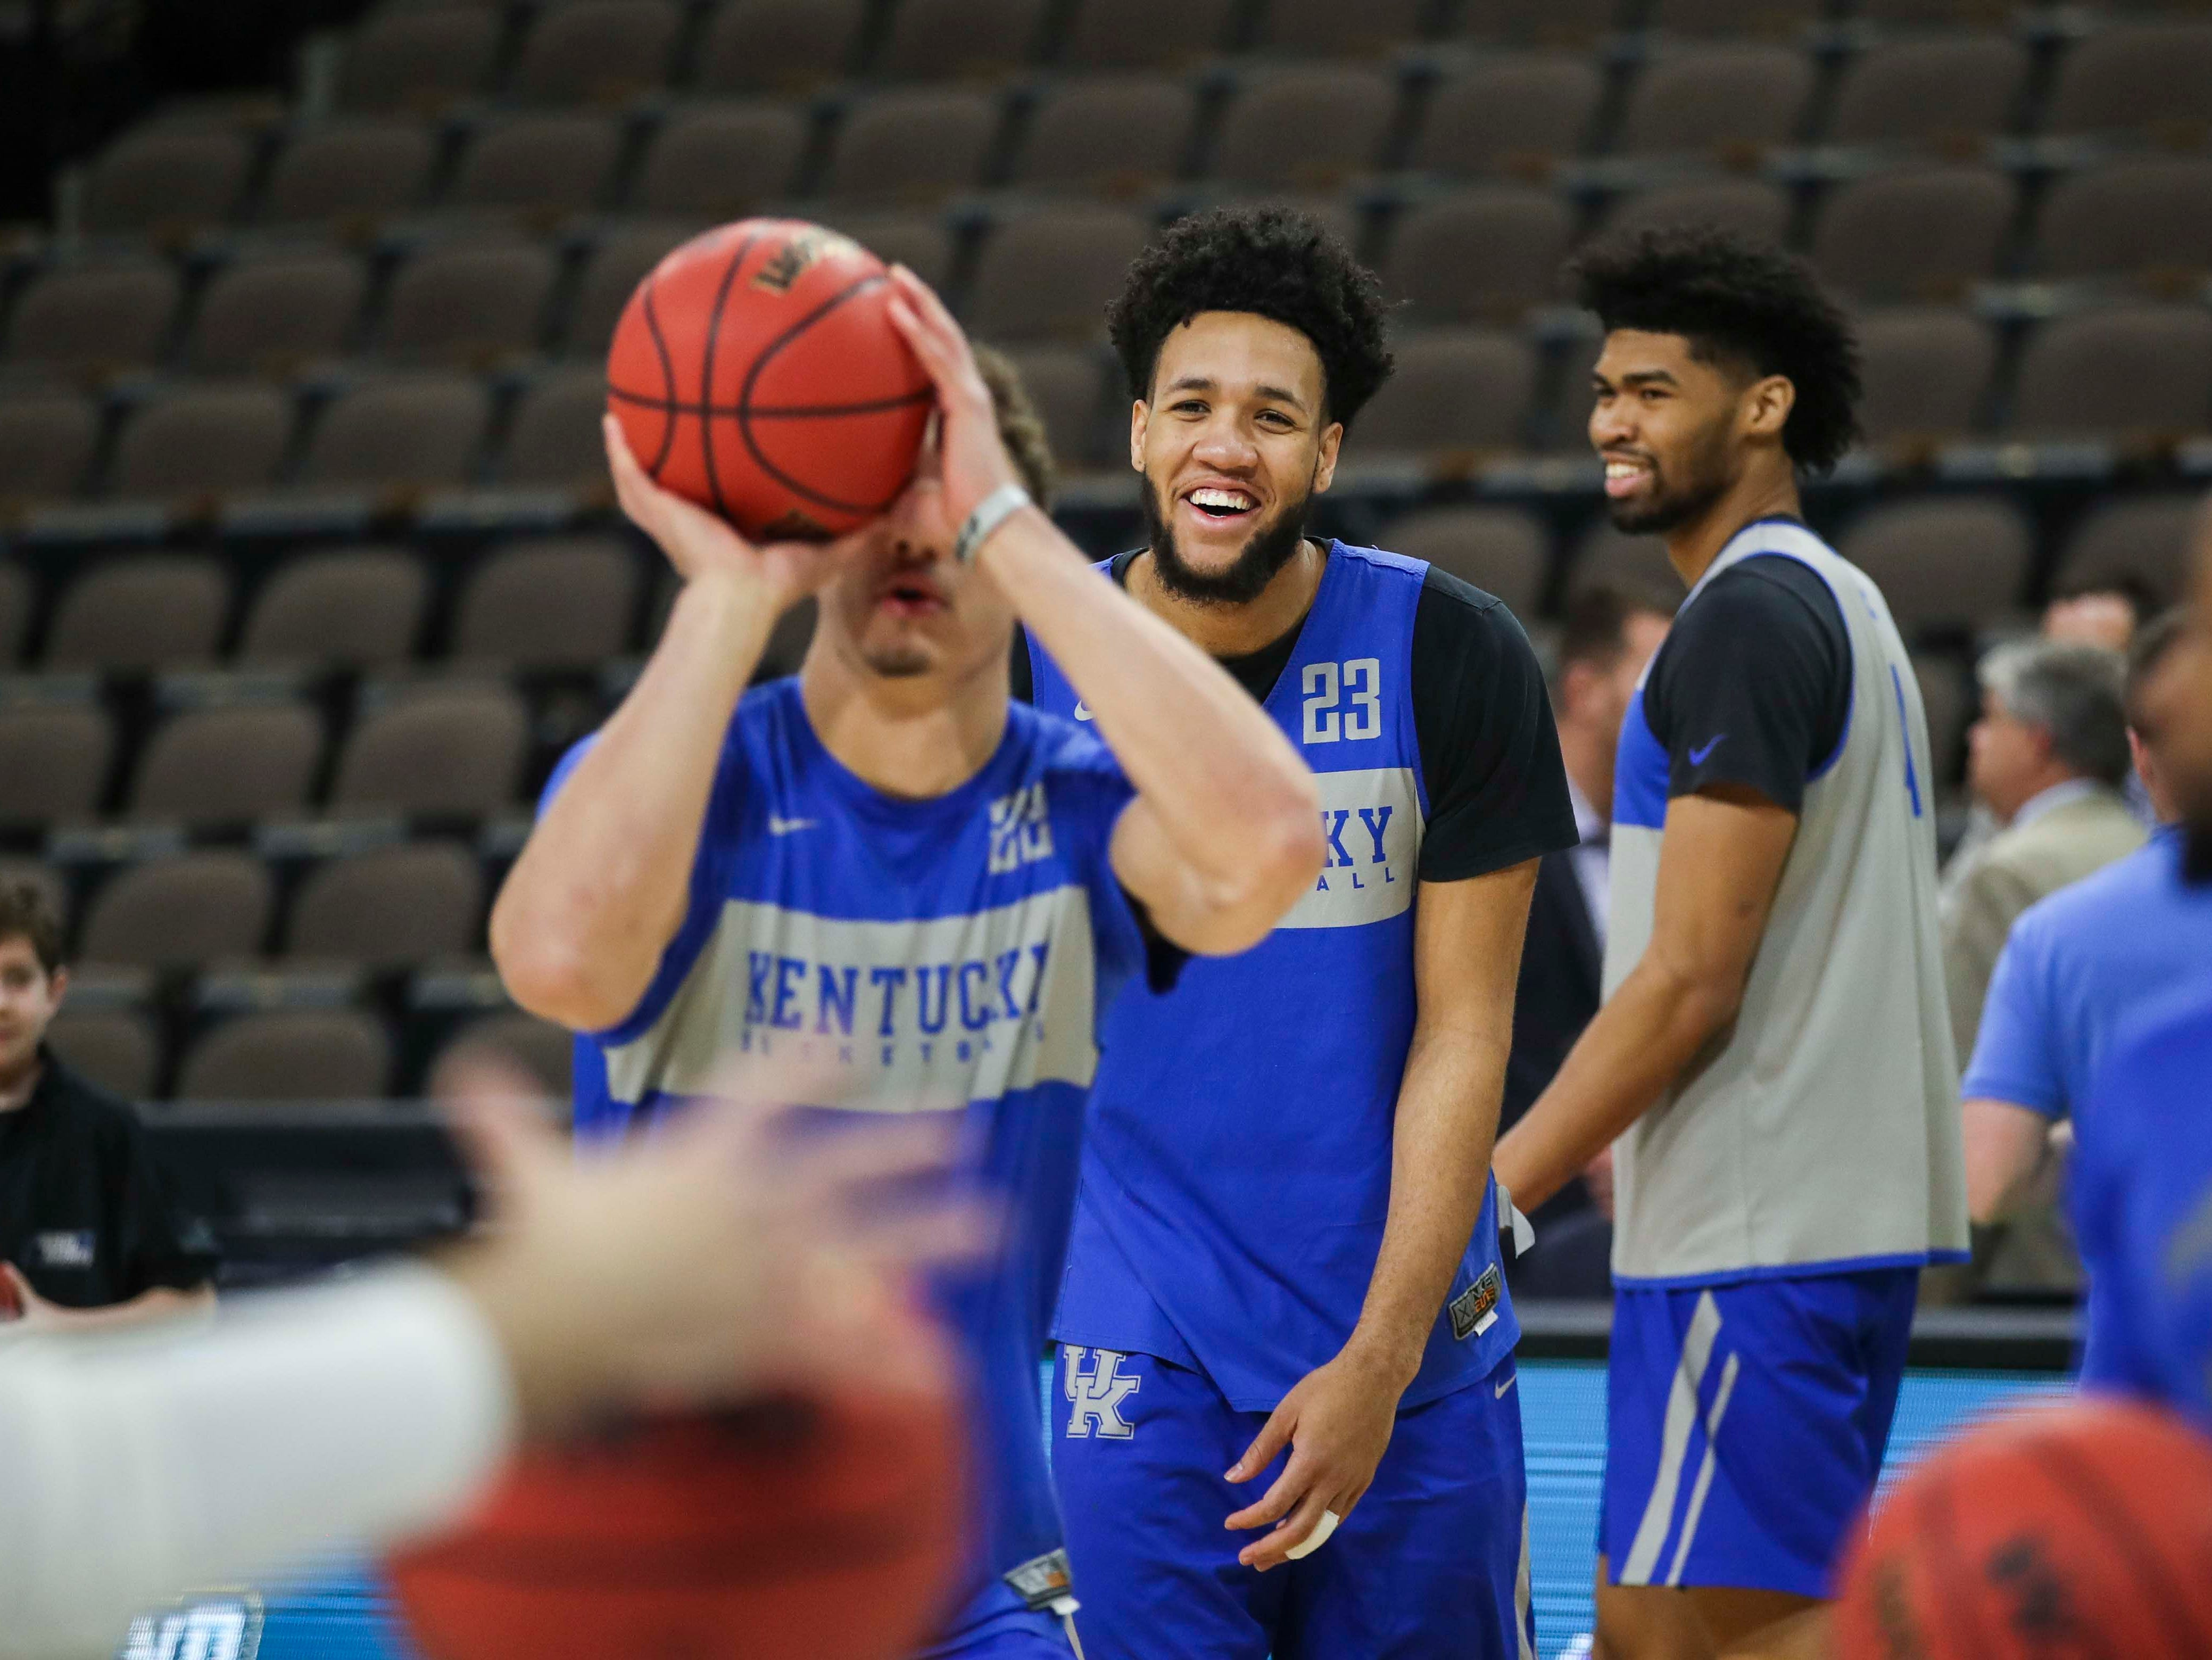 Kentucky's practice was loose and the players had fun Wednesday afternoon in Jacksonville. March 20, 2019